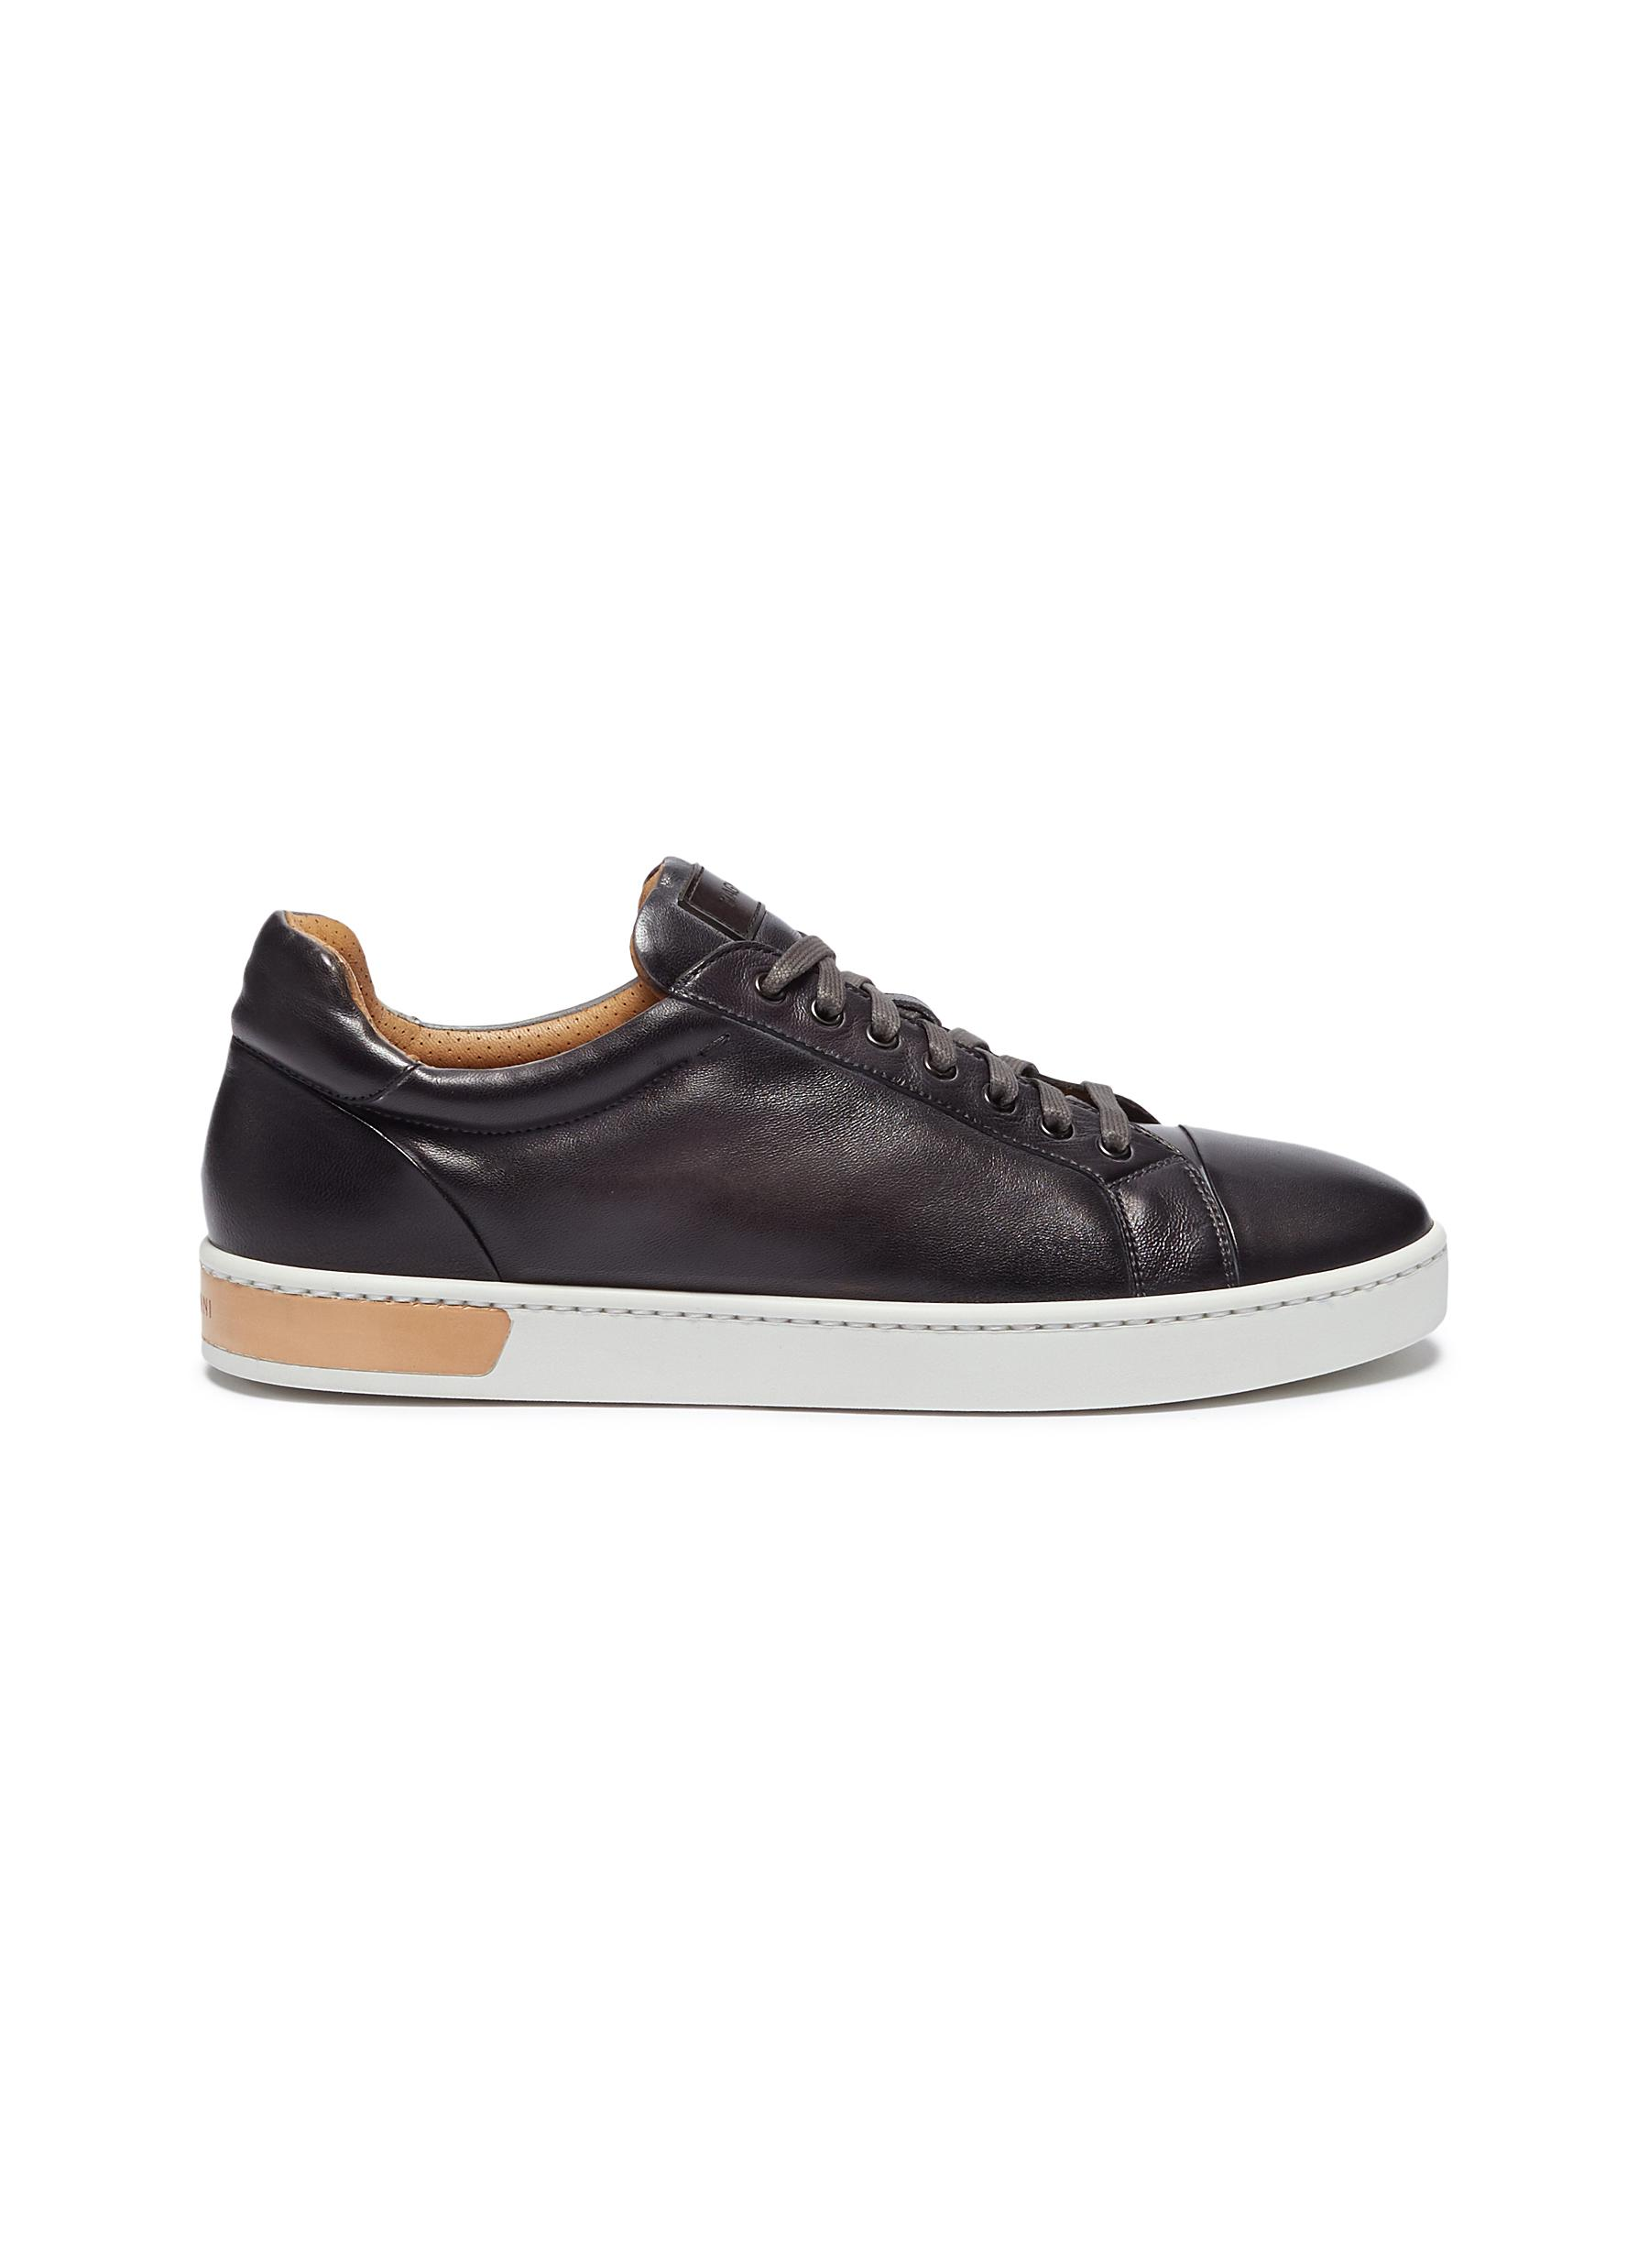 Leather sneakers by Magnanni